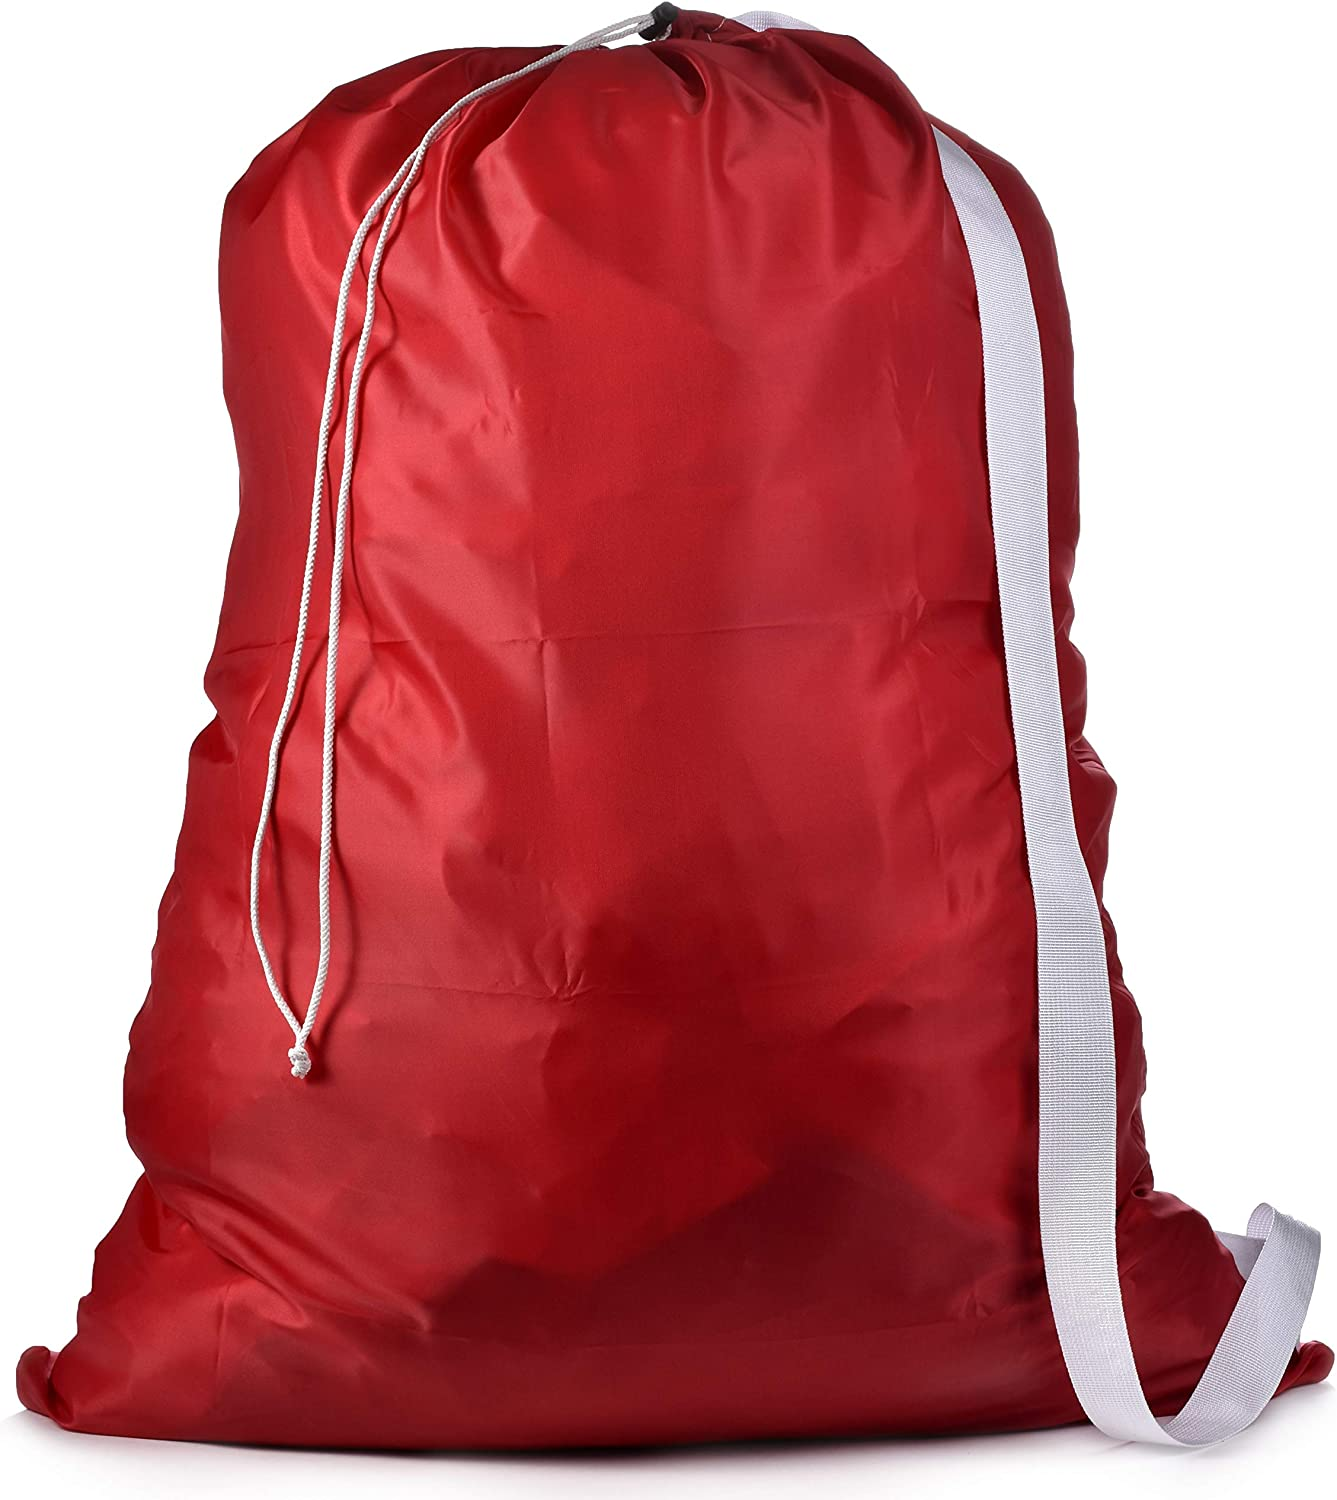 "Shoulder Strap Laundry Bag - Drawstring Locking Closure, Durable Nylon Material, Large Capacity, Heavy Duty Stitching, Hands Free Carrying, Perfect for Laundromat or College Dorm. (Red | 30"" x 40"")"